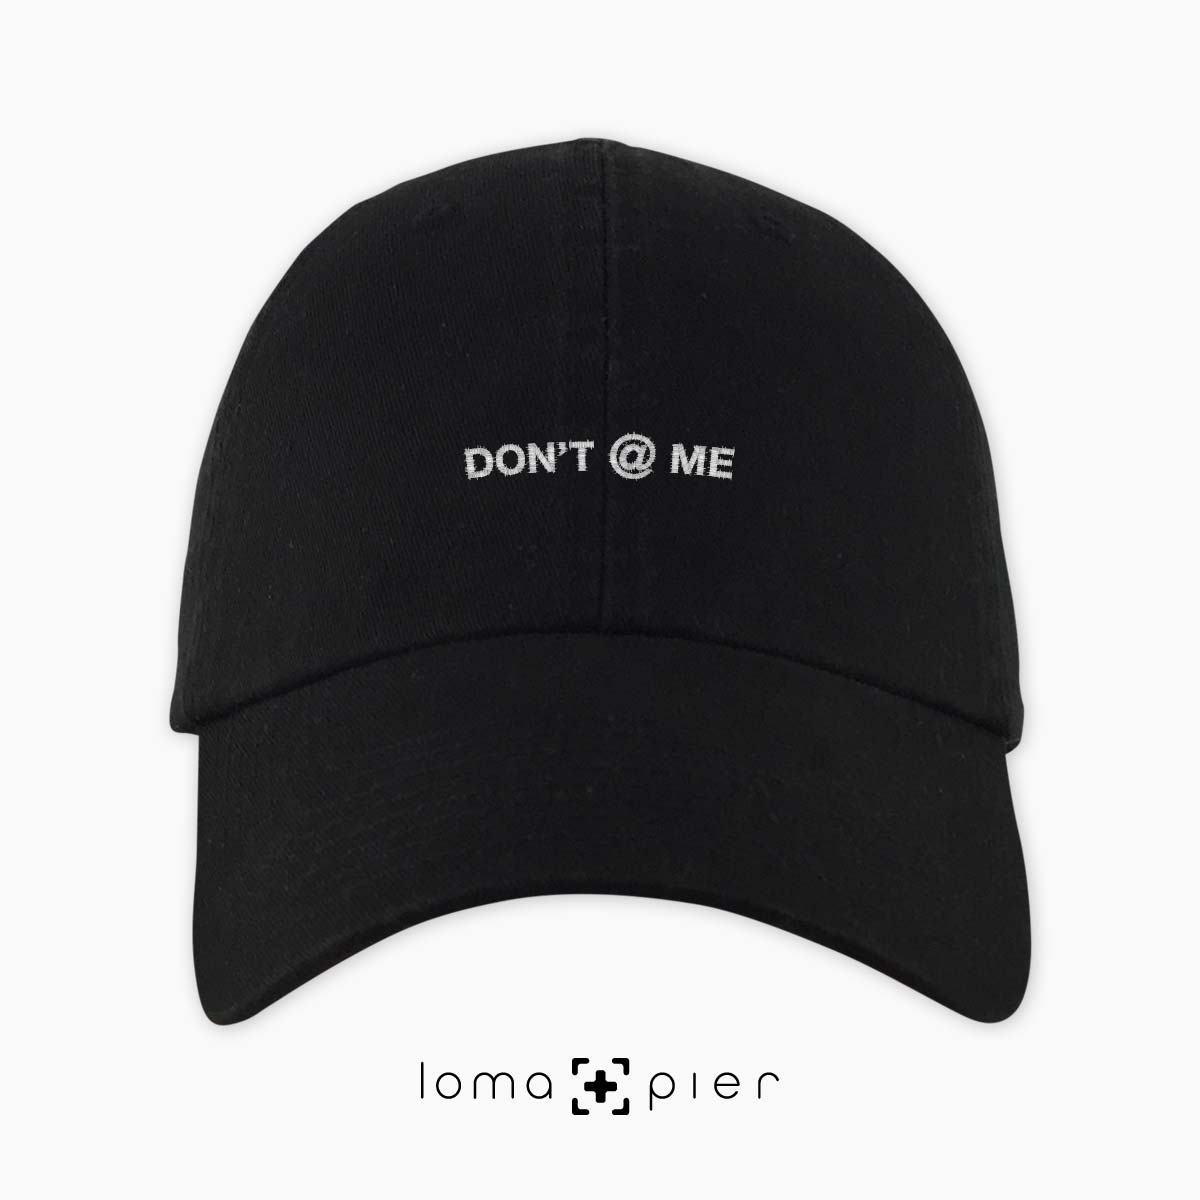 DON'T @ ME dad hat by loma+pier hat store